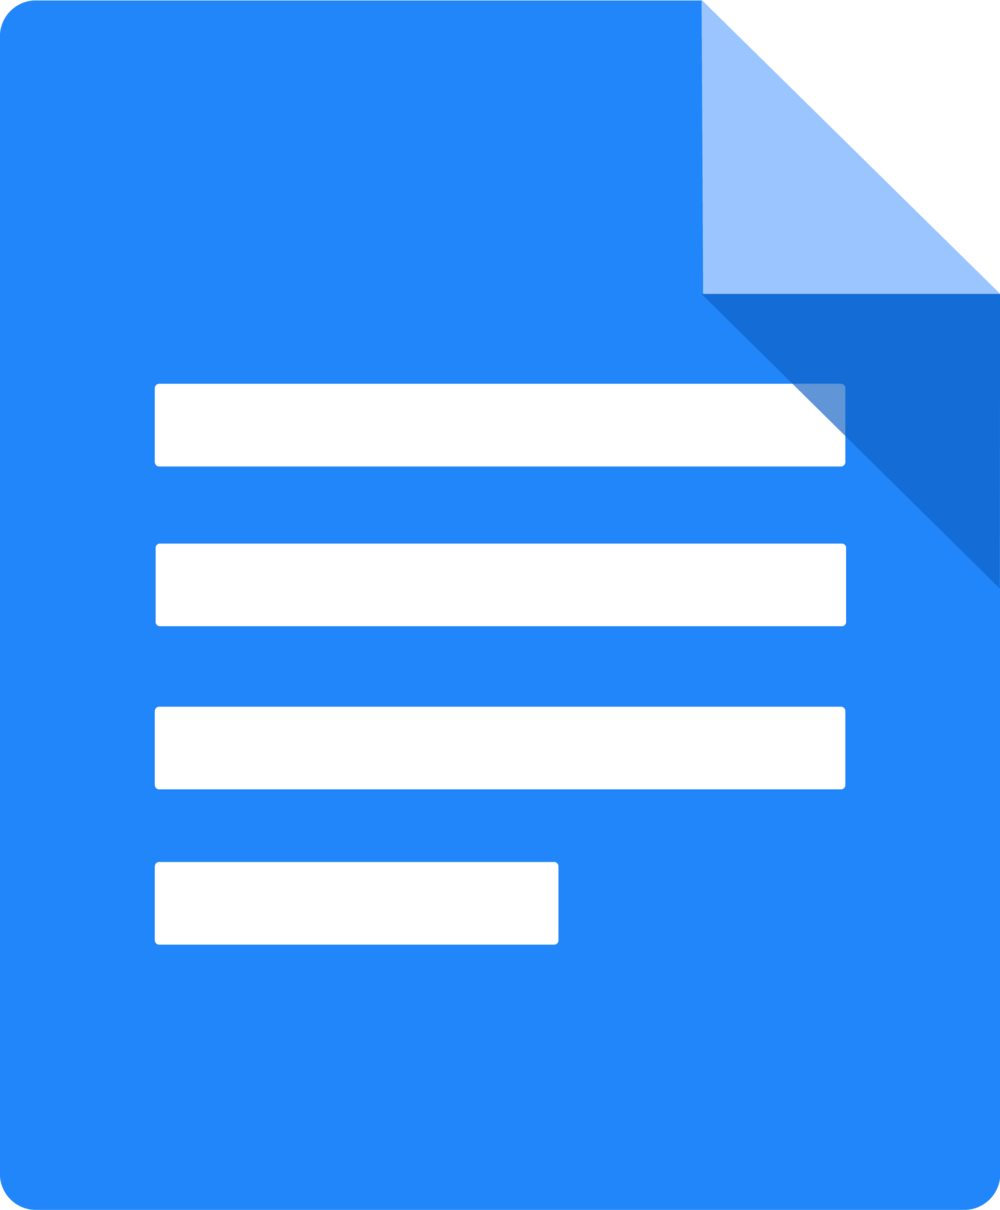 Google Docs Png (111+ images in Collection) Page 3.